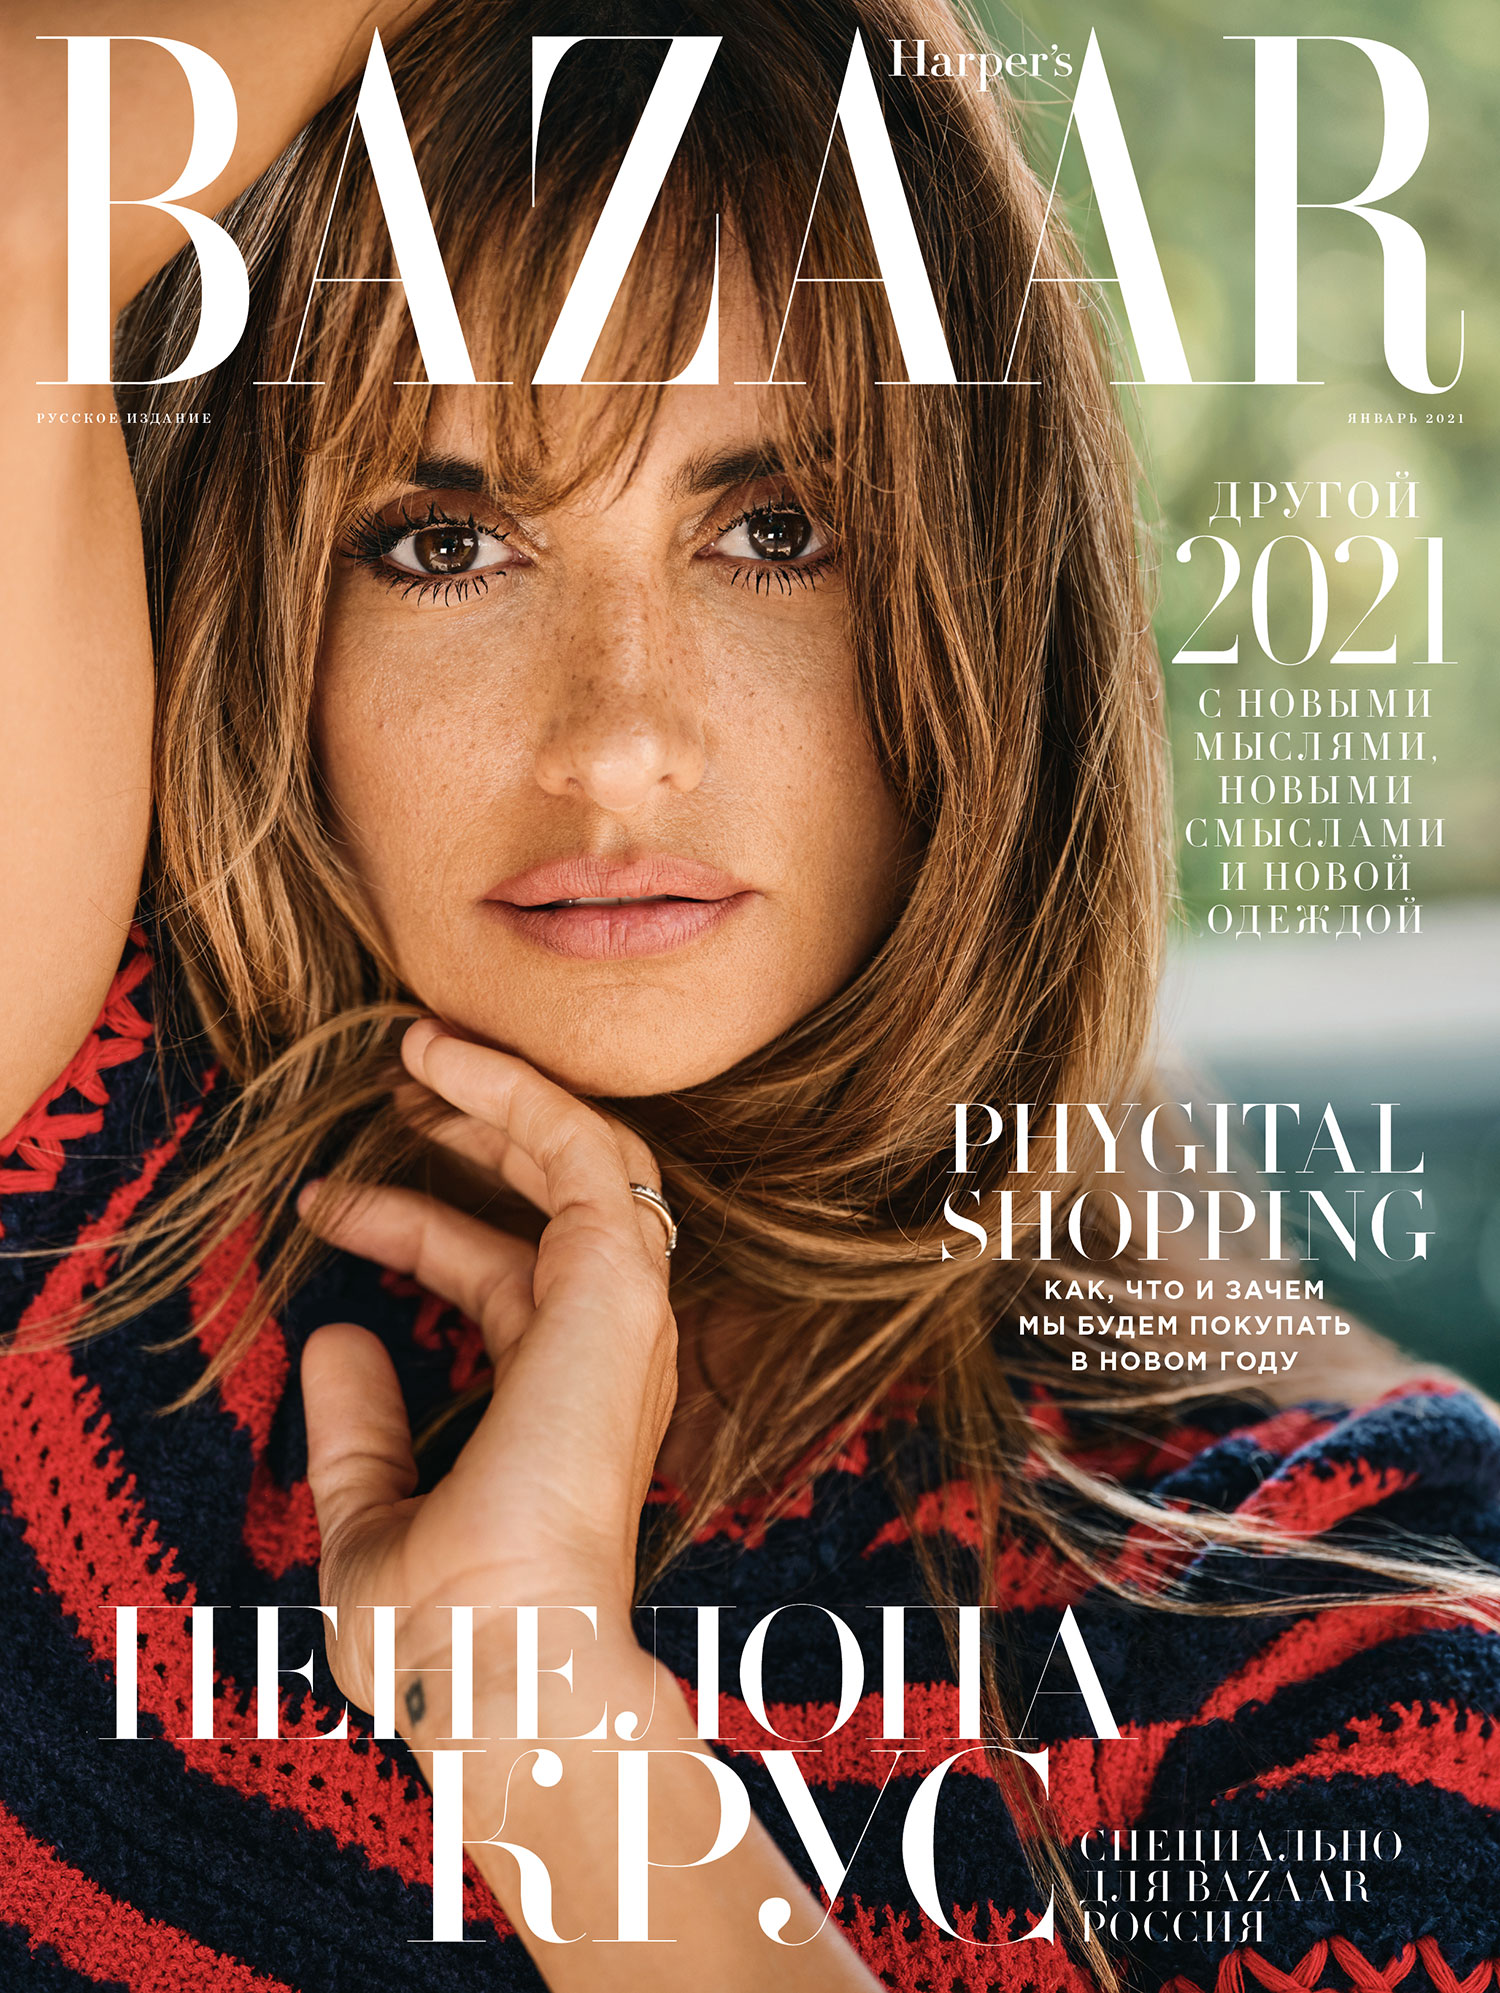 Penélope Cruz covers Harper's Bazaar Russia January 2021 by Nico Bustos